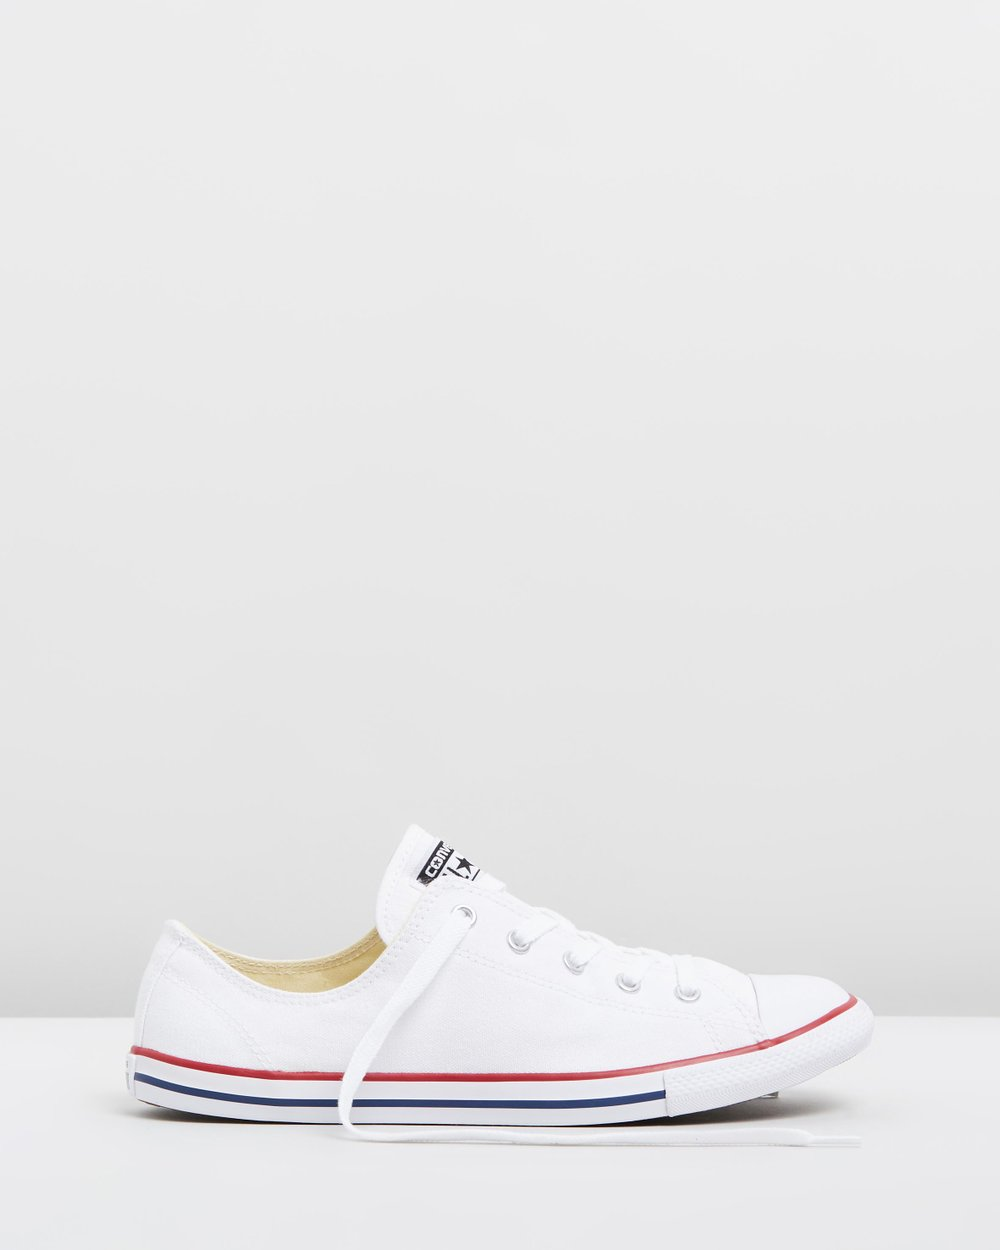 98949a1c765 Chuck Taylor All Star Dainty Ox - Women s by Converse Online